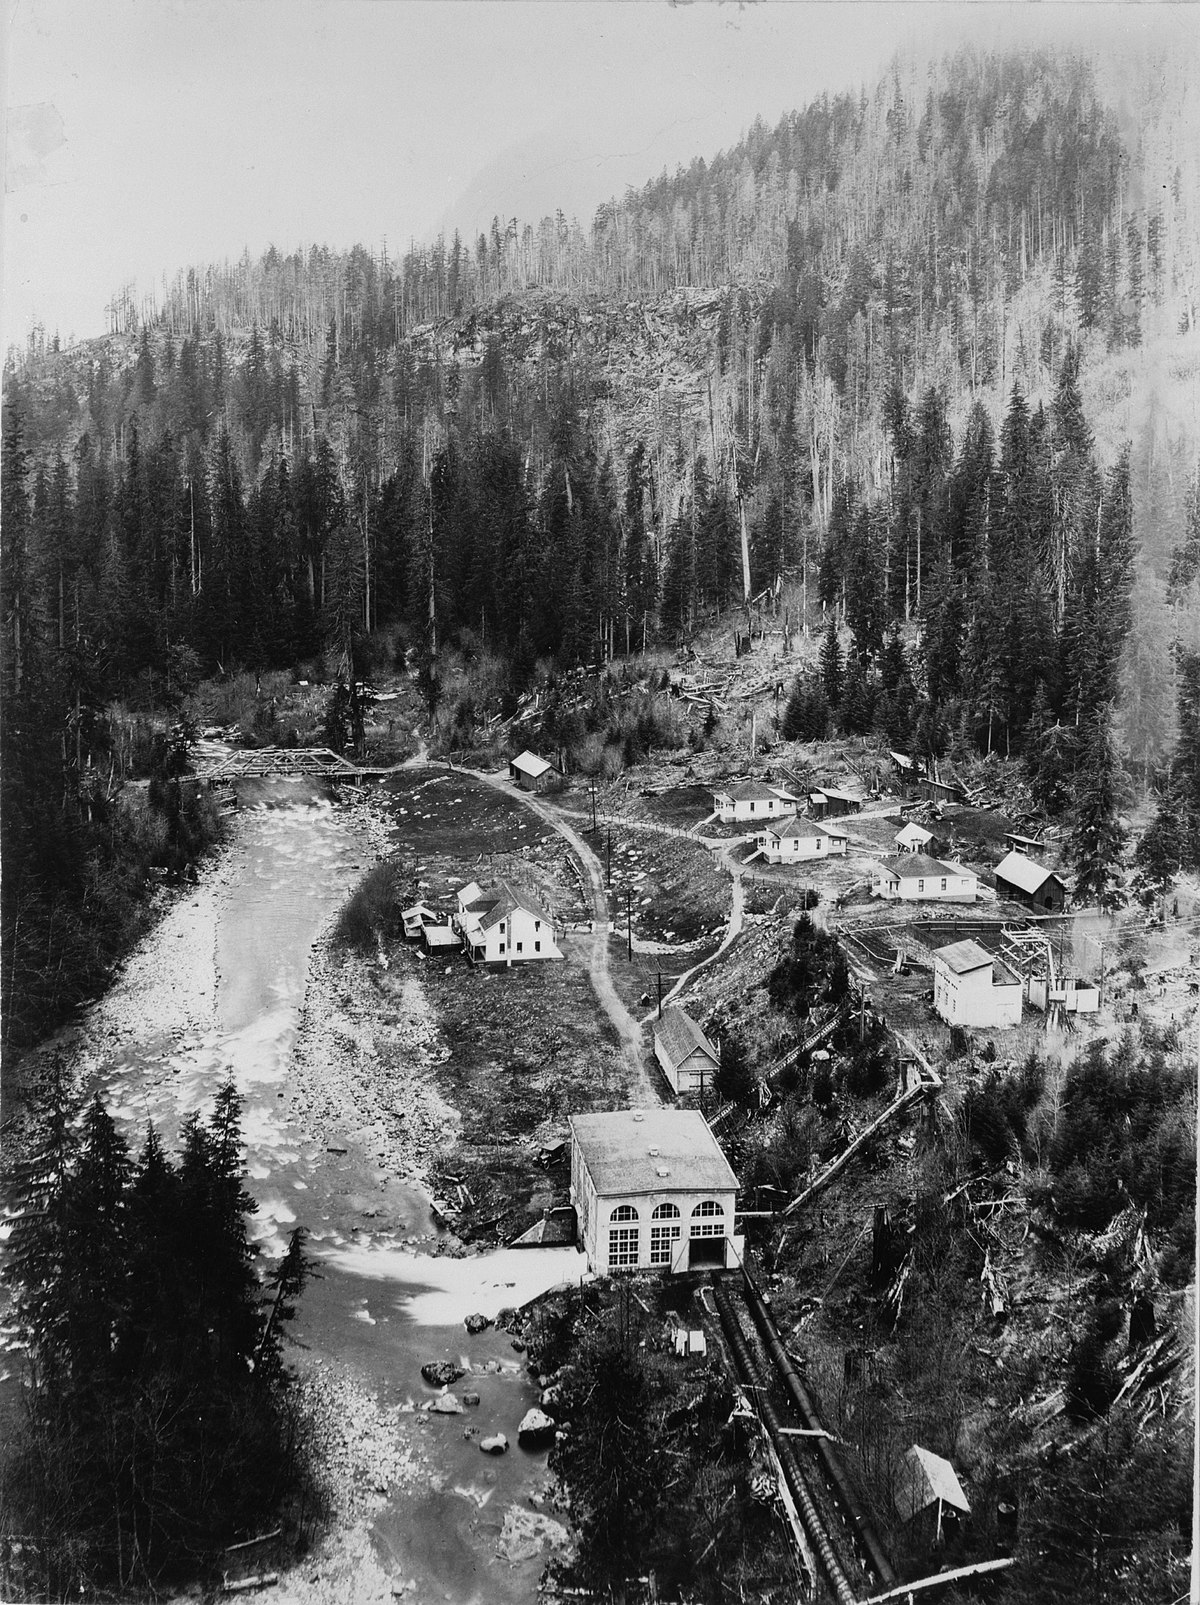 Nooksack Falls Hydroelectric Power Plant